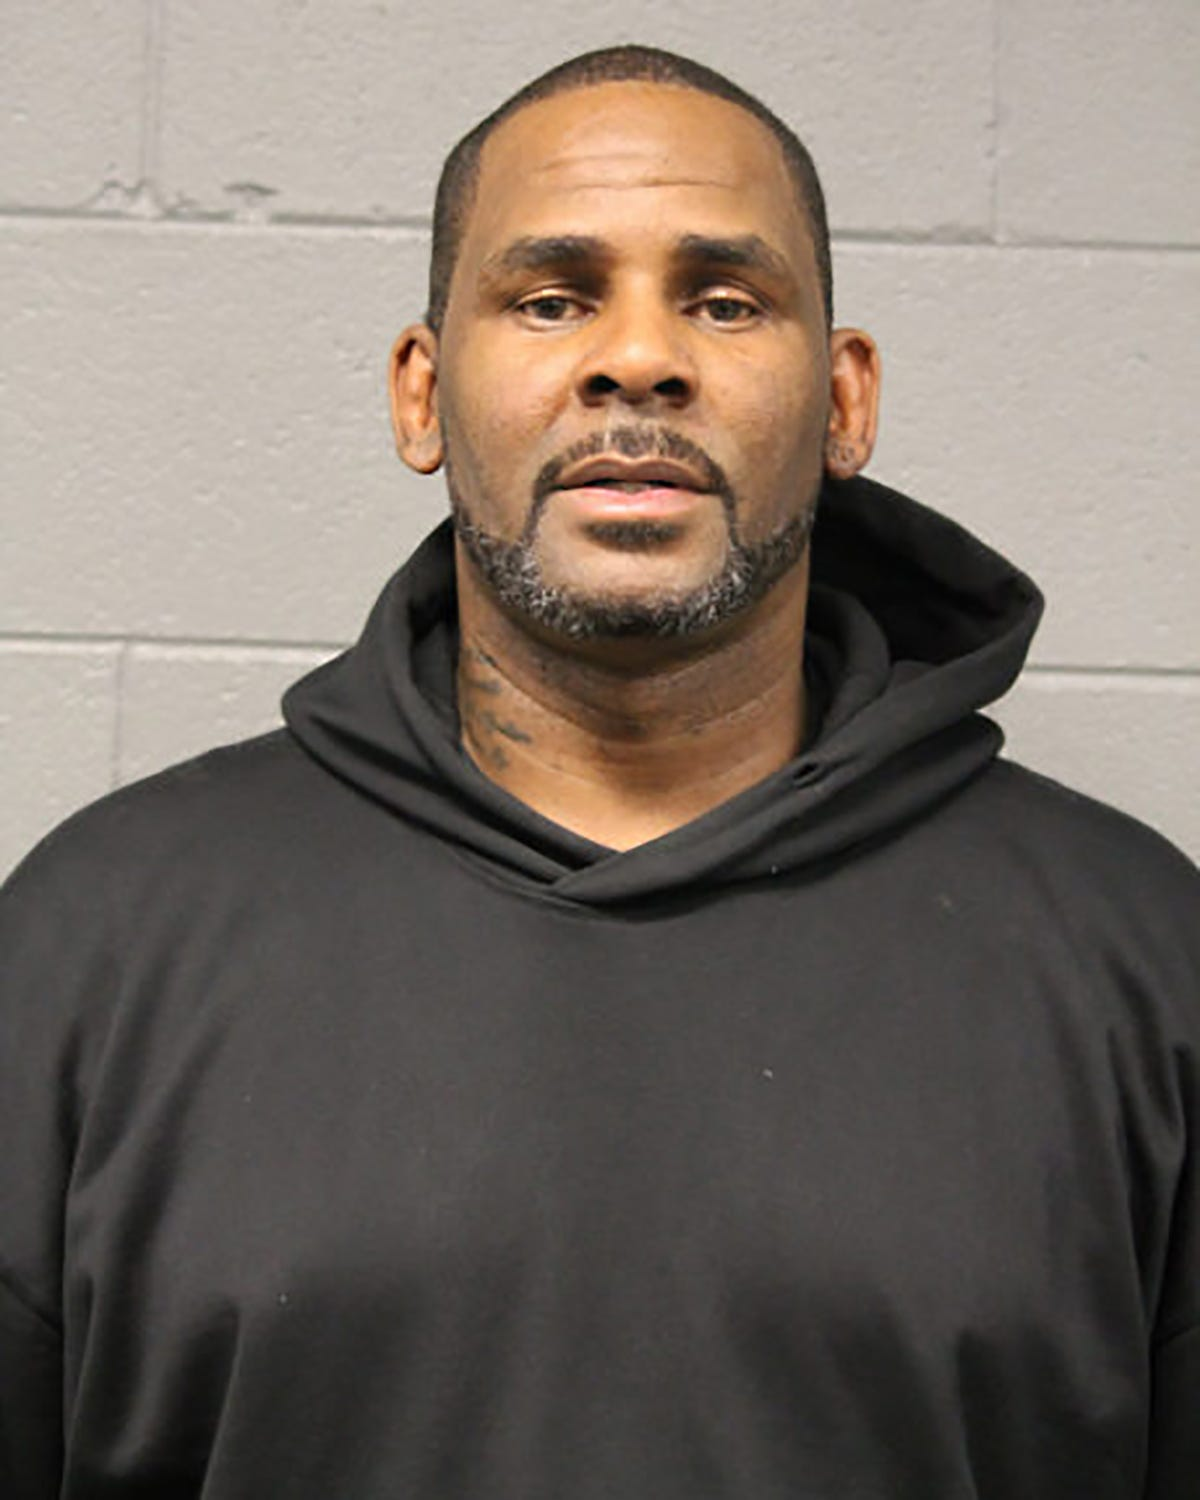 R  Kelly's history of arrests, indictments and lawsuits over